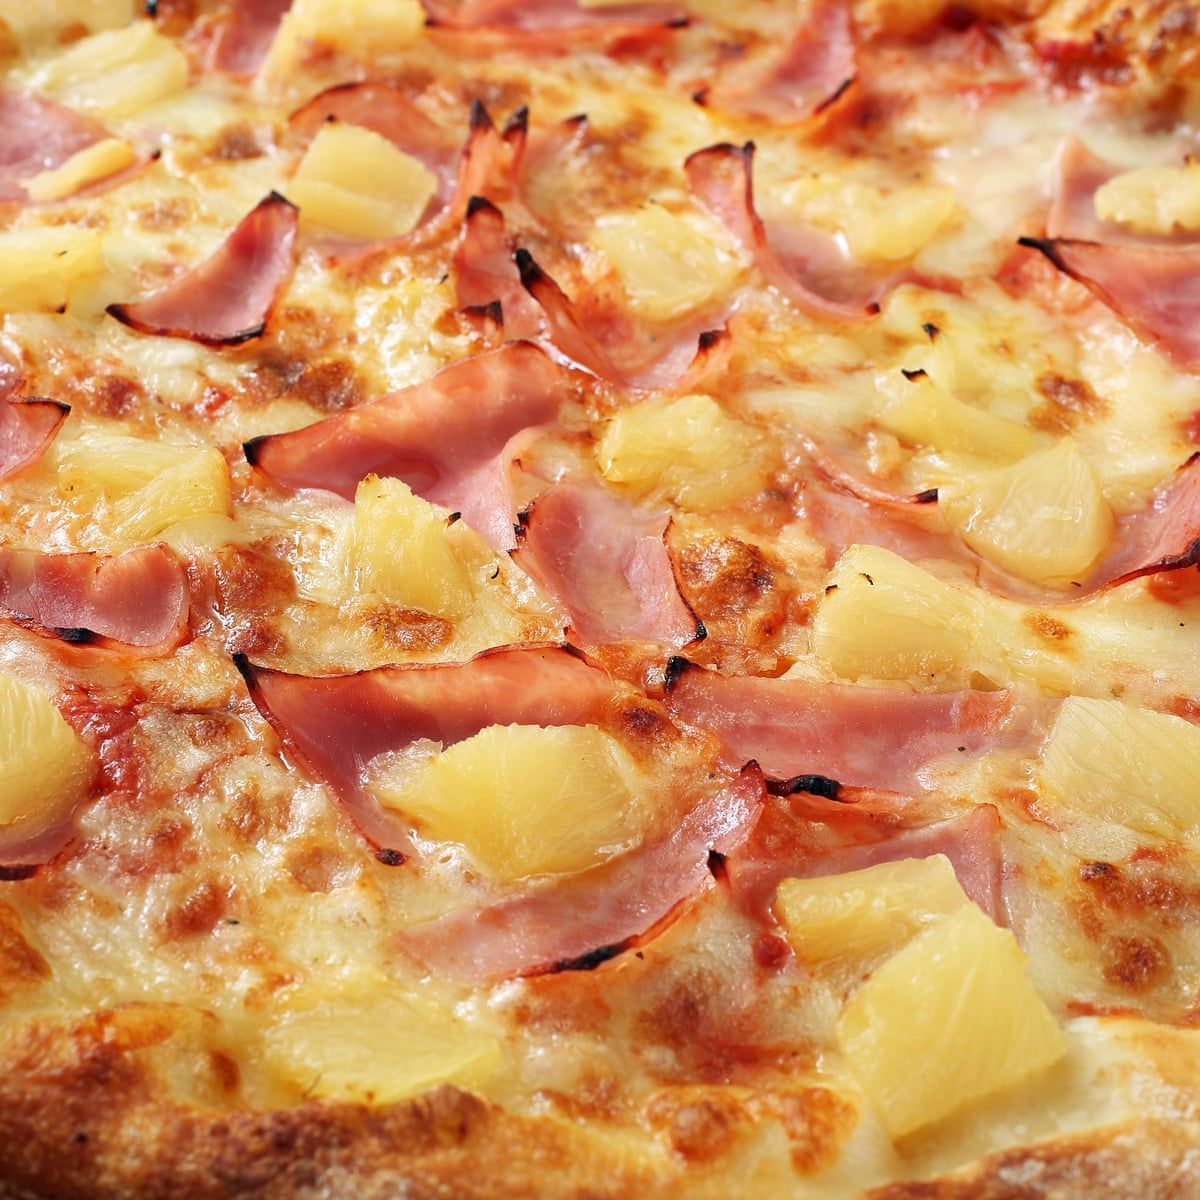 Pineapple pizza is 1